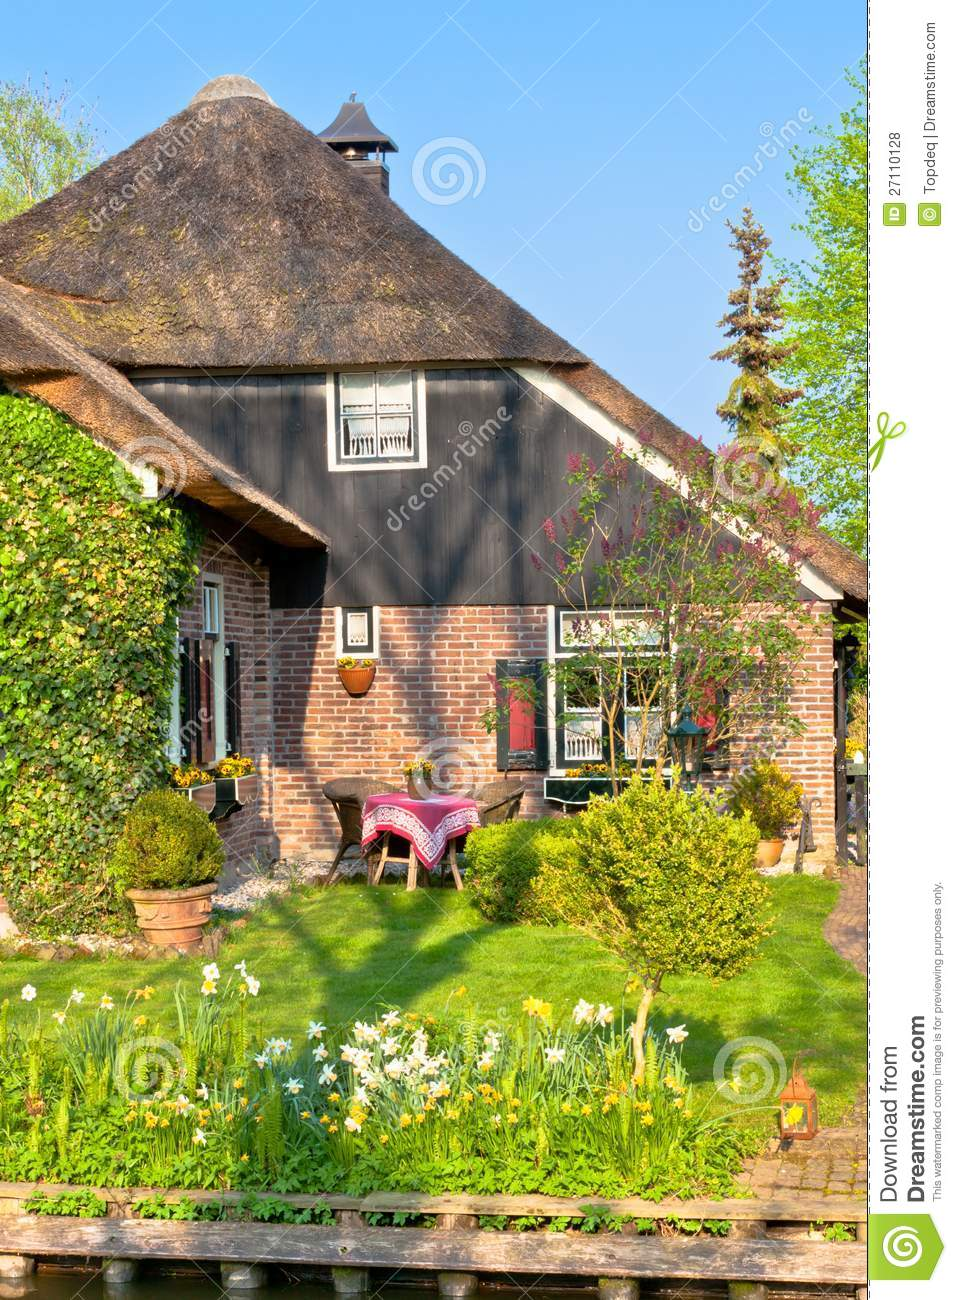 Traditional dutch house royalty free stock photos image for Dutch house